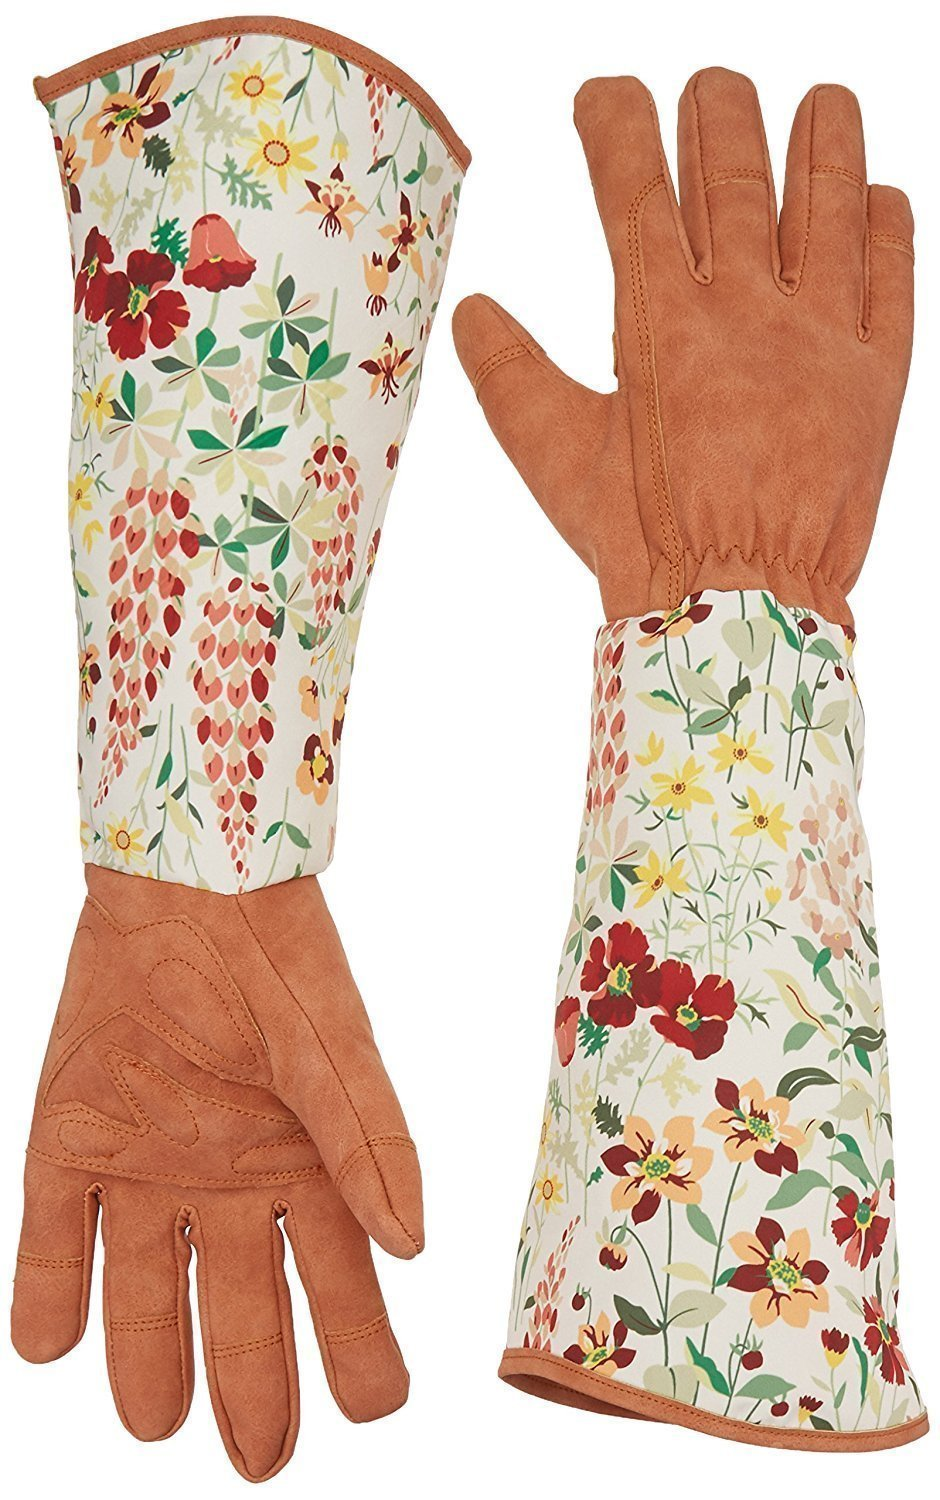 Leather Rose Pruning Gardening Gloves Thorn Proof Puncture Resistant Garden Work Gloves Gauntlet Until Elbow Length To Protect Your Arms(CYST04-U) Cheng Yi